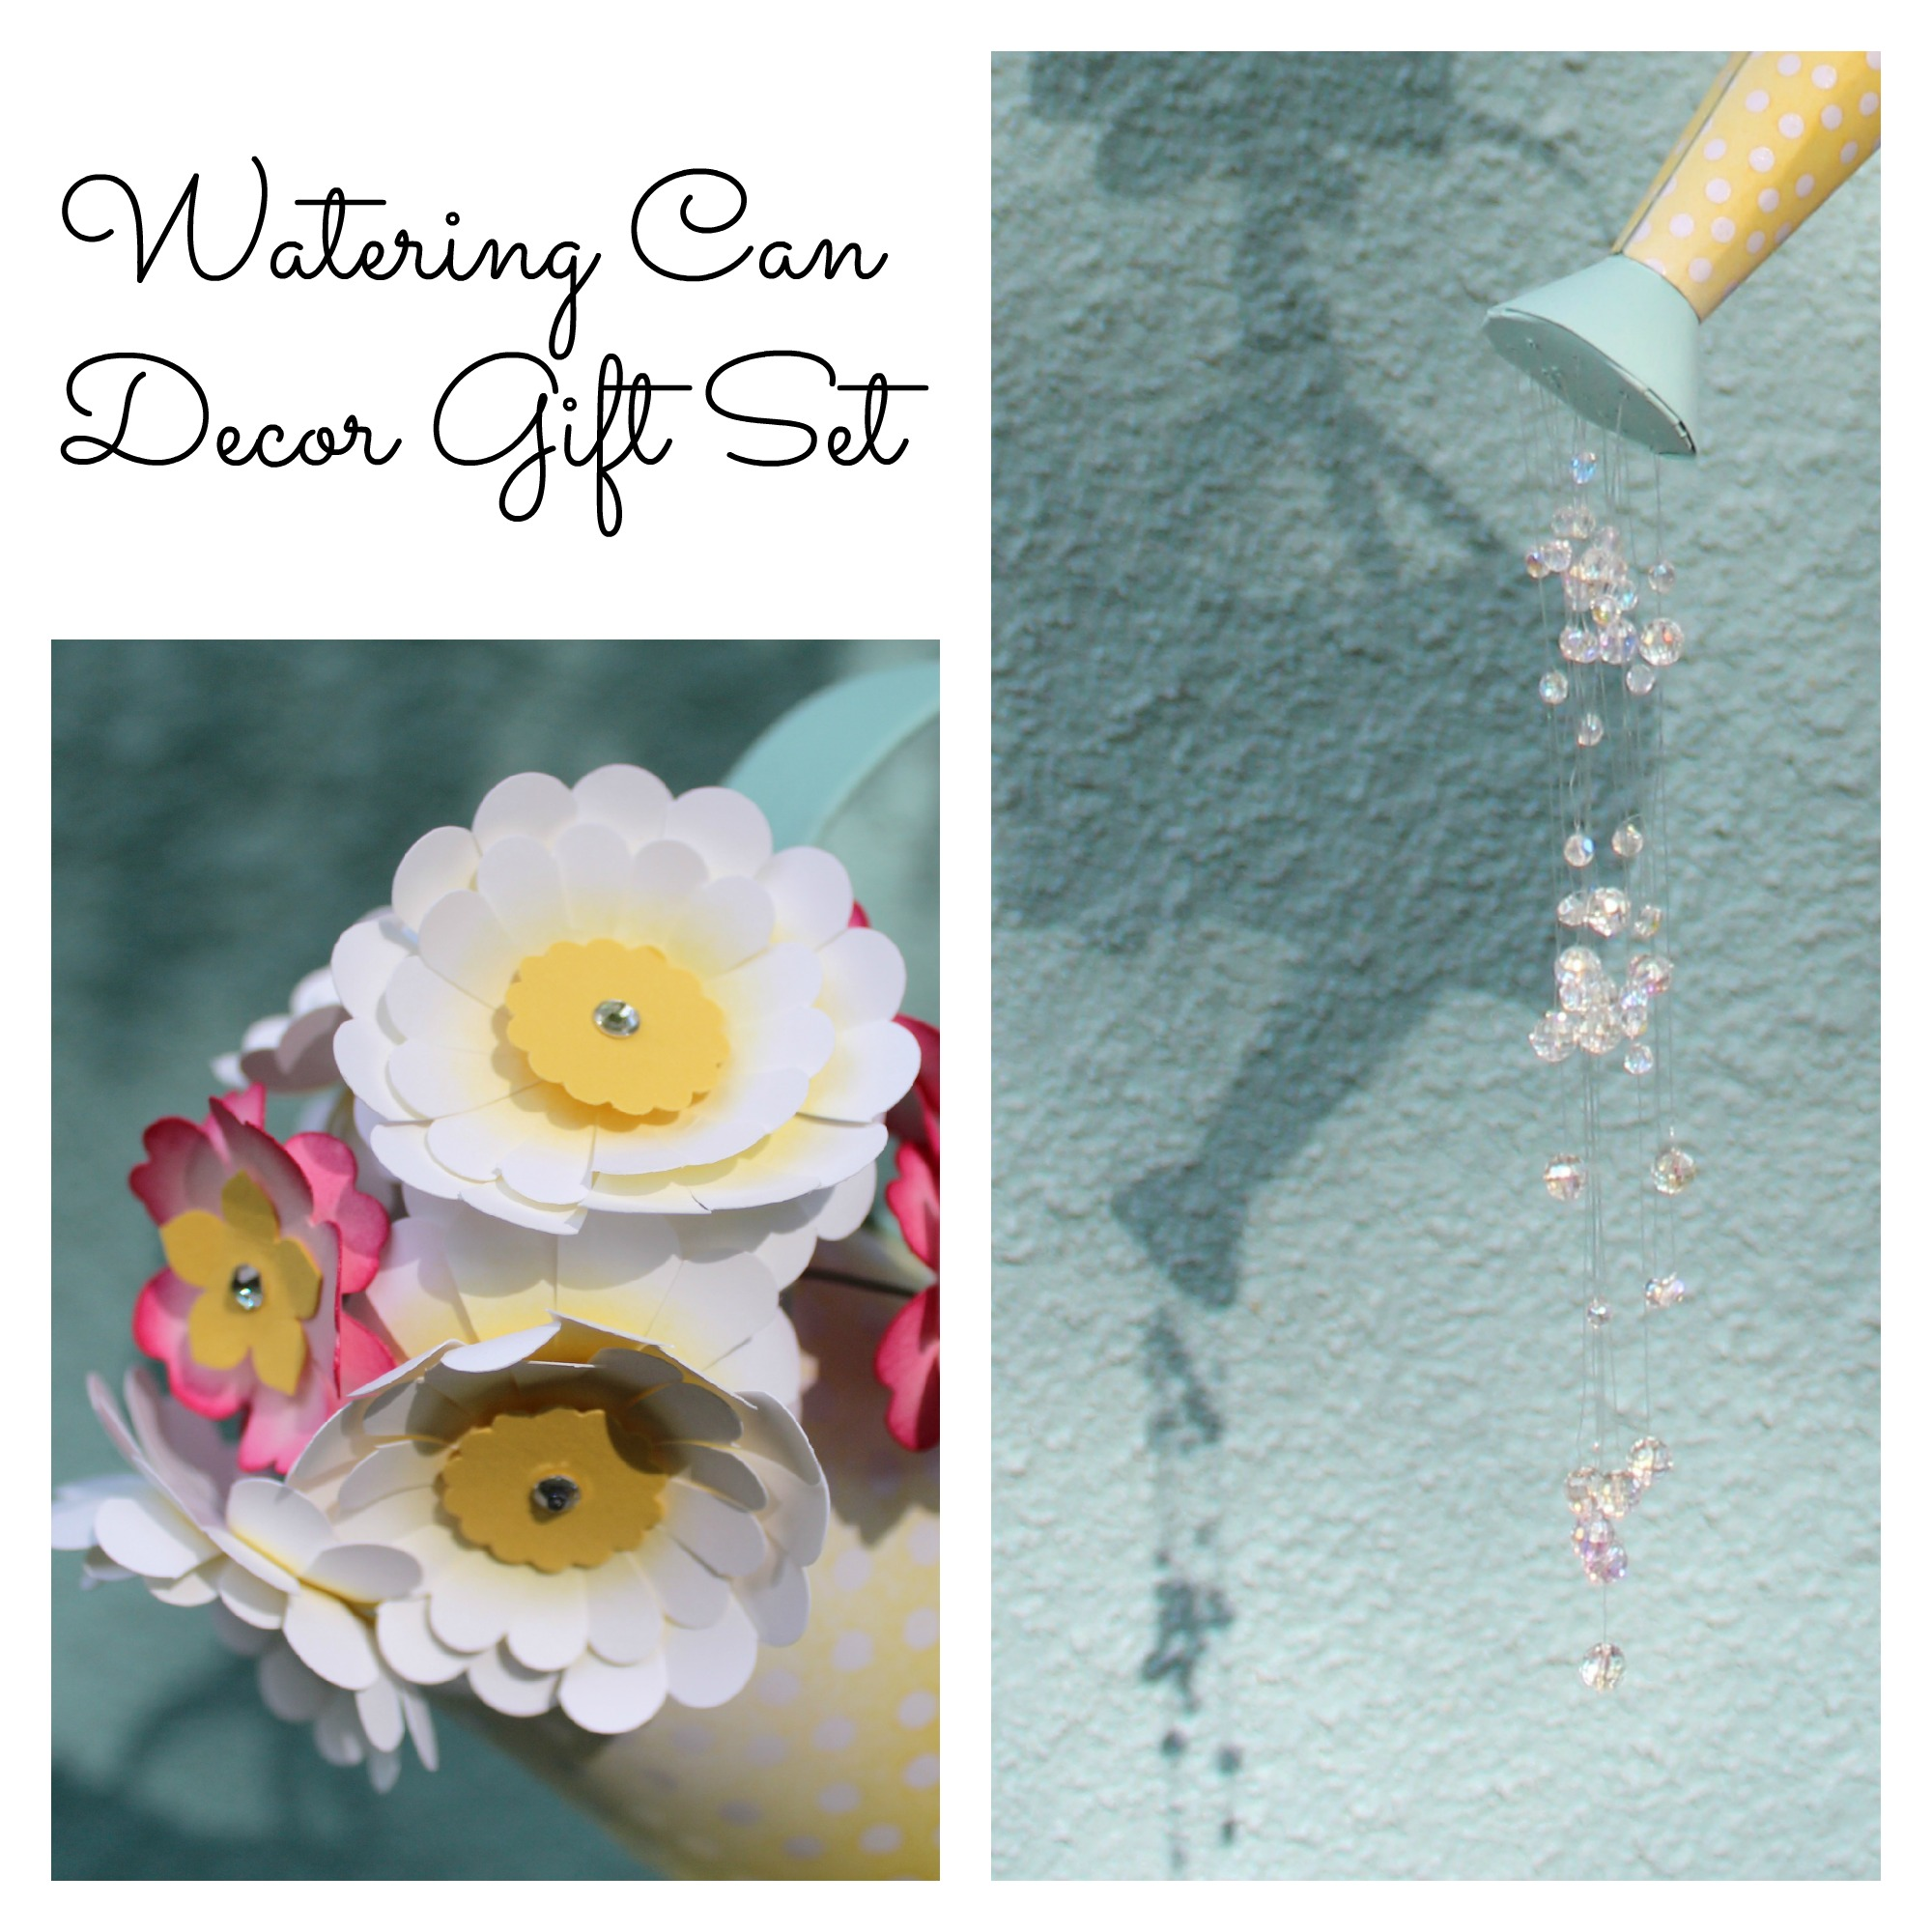 Watering Can Decor Gift Set SP